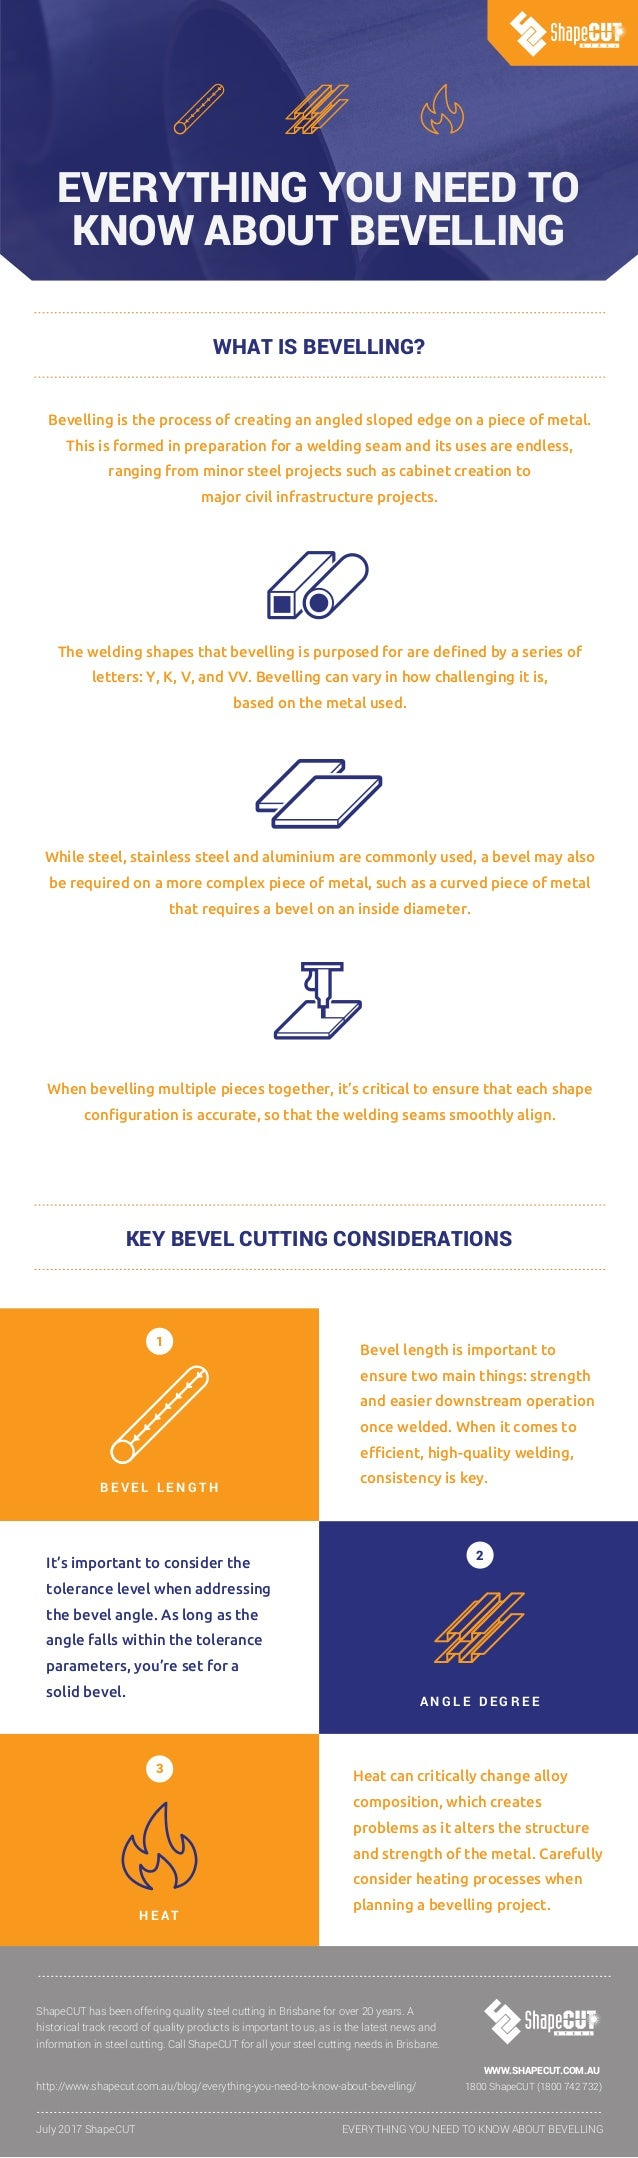 2 EVERYTHING YOU NEED TO KNOW ABOUT BEVELLING KEY BEVEL CUTTING CONSIDERATIONS WWW.SHAPECUT.COM.AU 1800 ShapeCUT (1800 742...